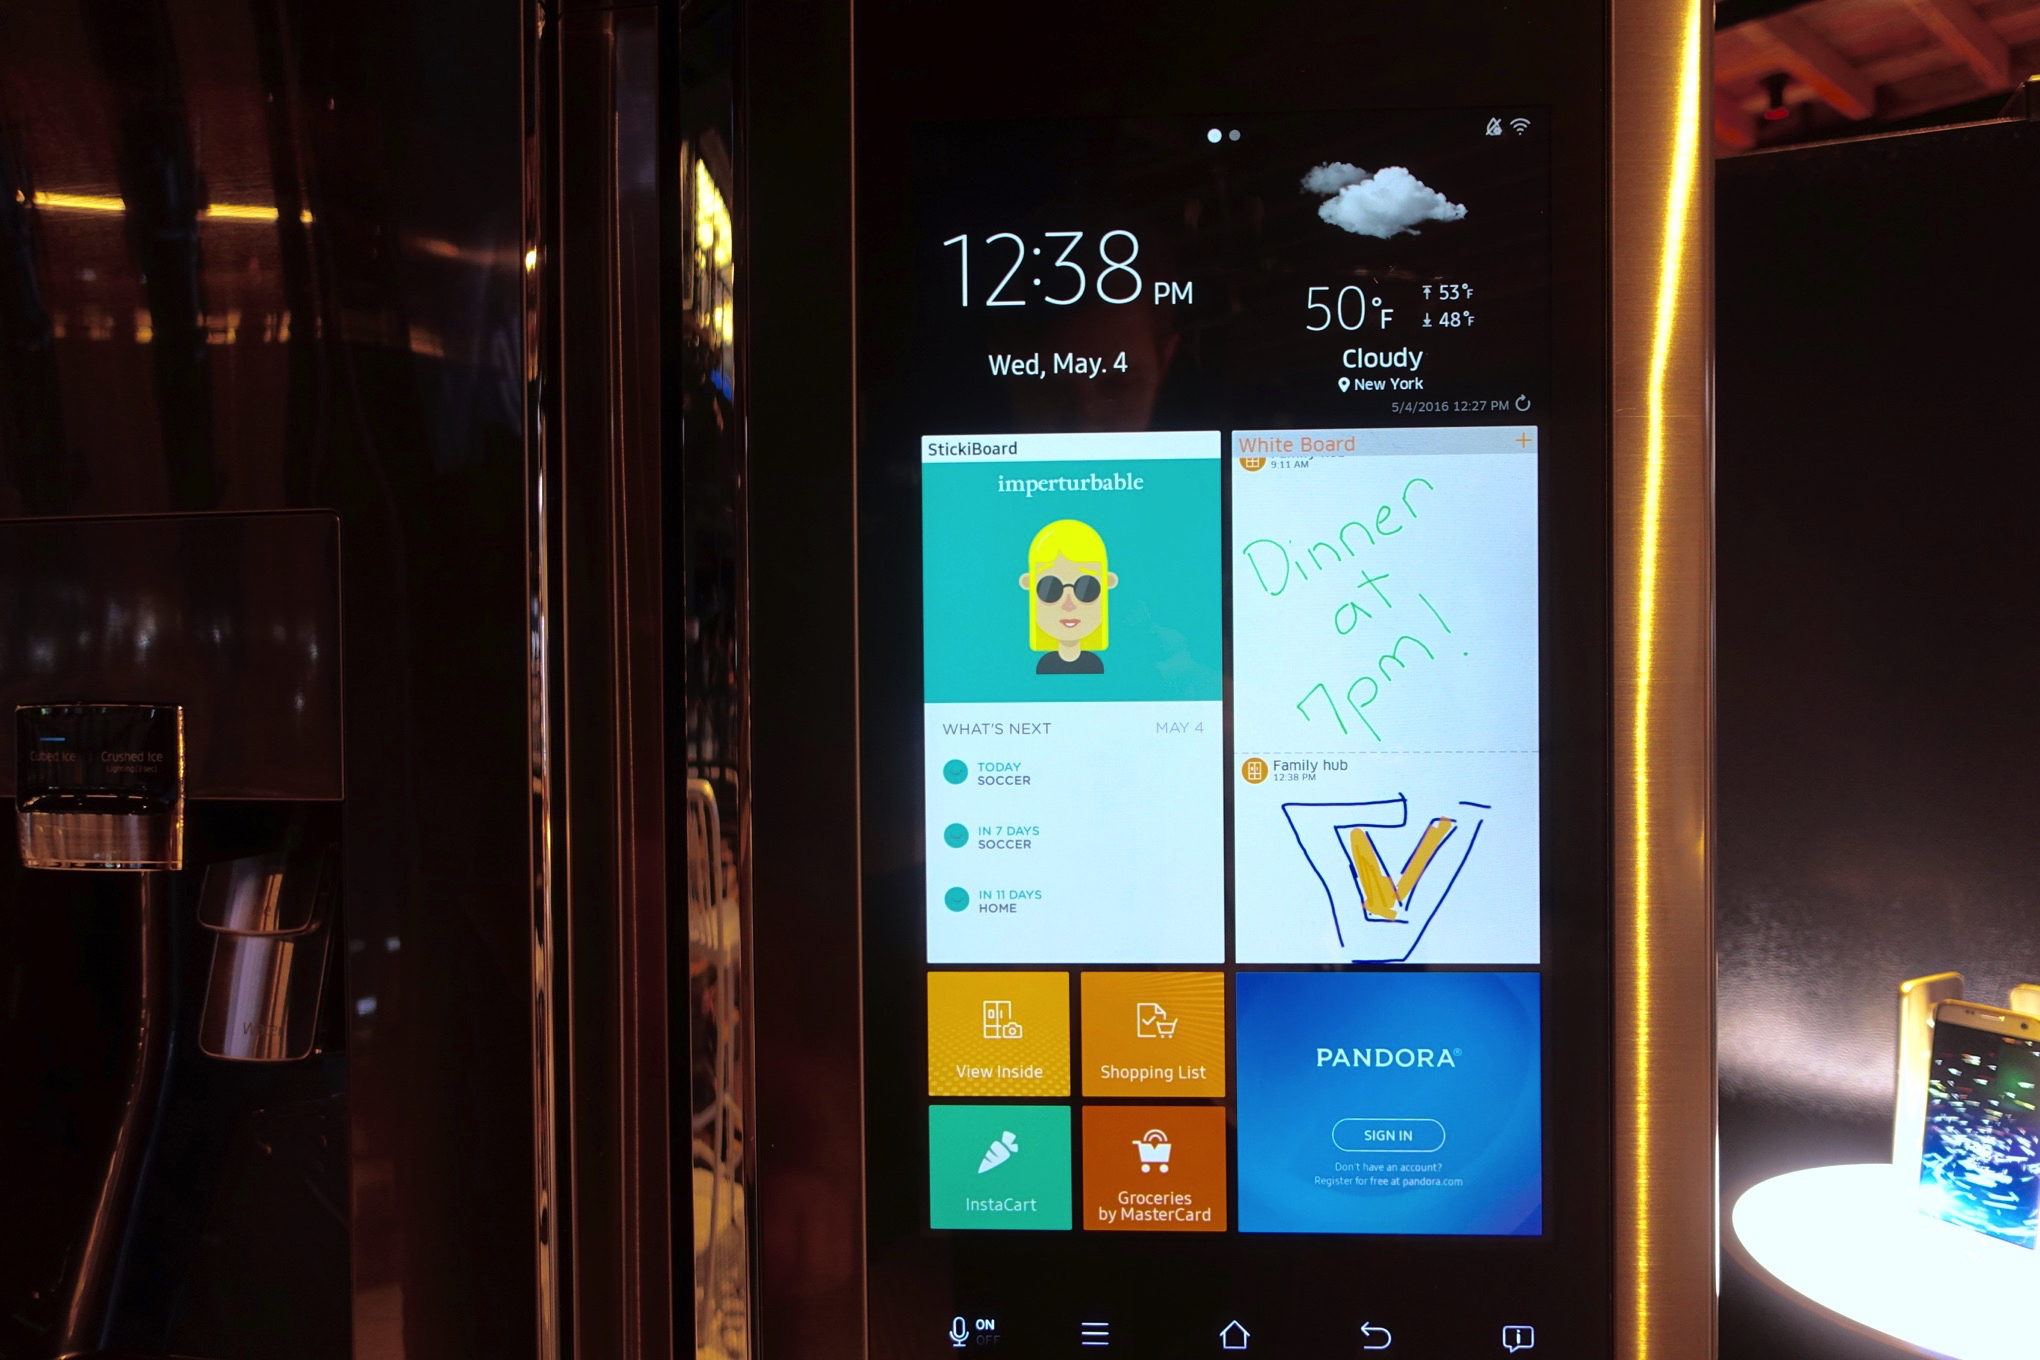 Samsungs Family Hub Smart Fridge Is Ridiculous Wonderful And Slow The Best 038 Free Android Applications For Electronics Electrical Engineers 1 Of 14